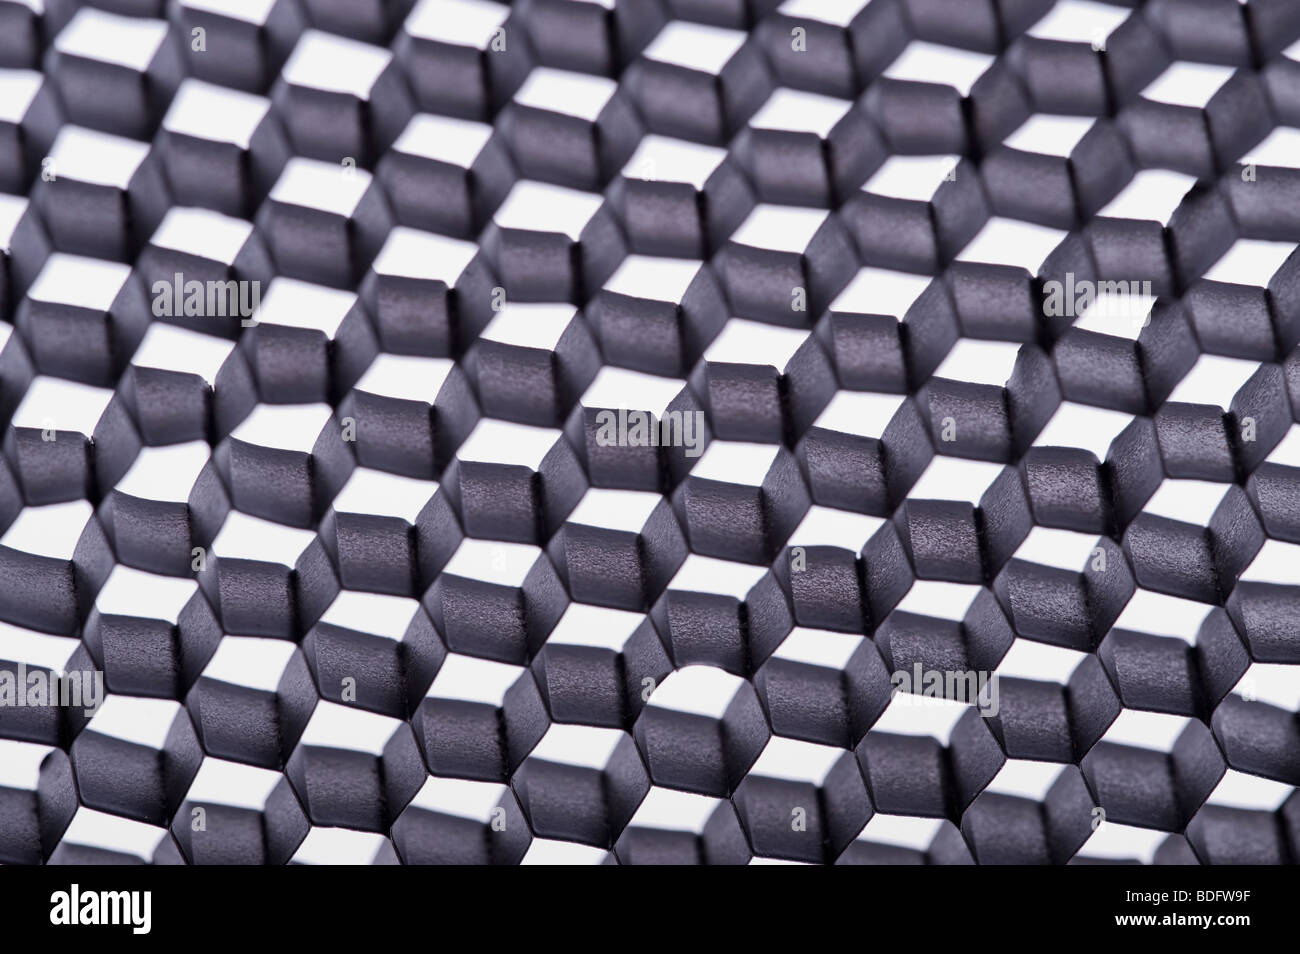 Black and white checkerboard pattern - Stock Image